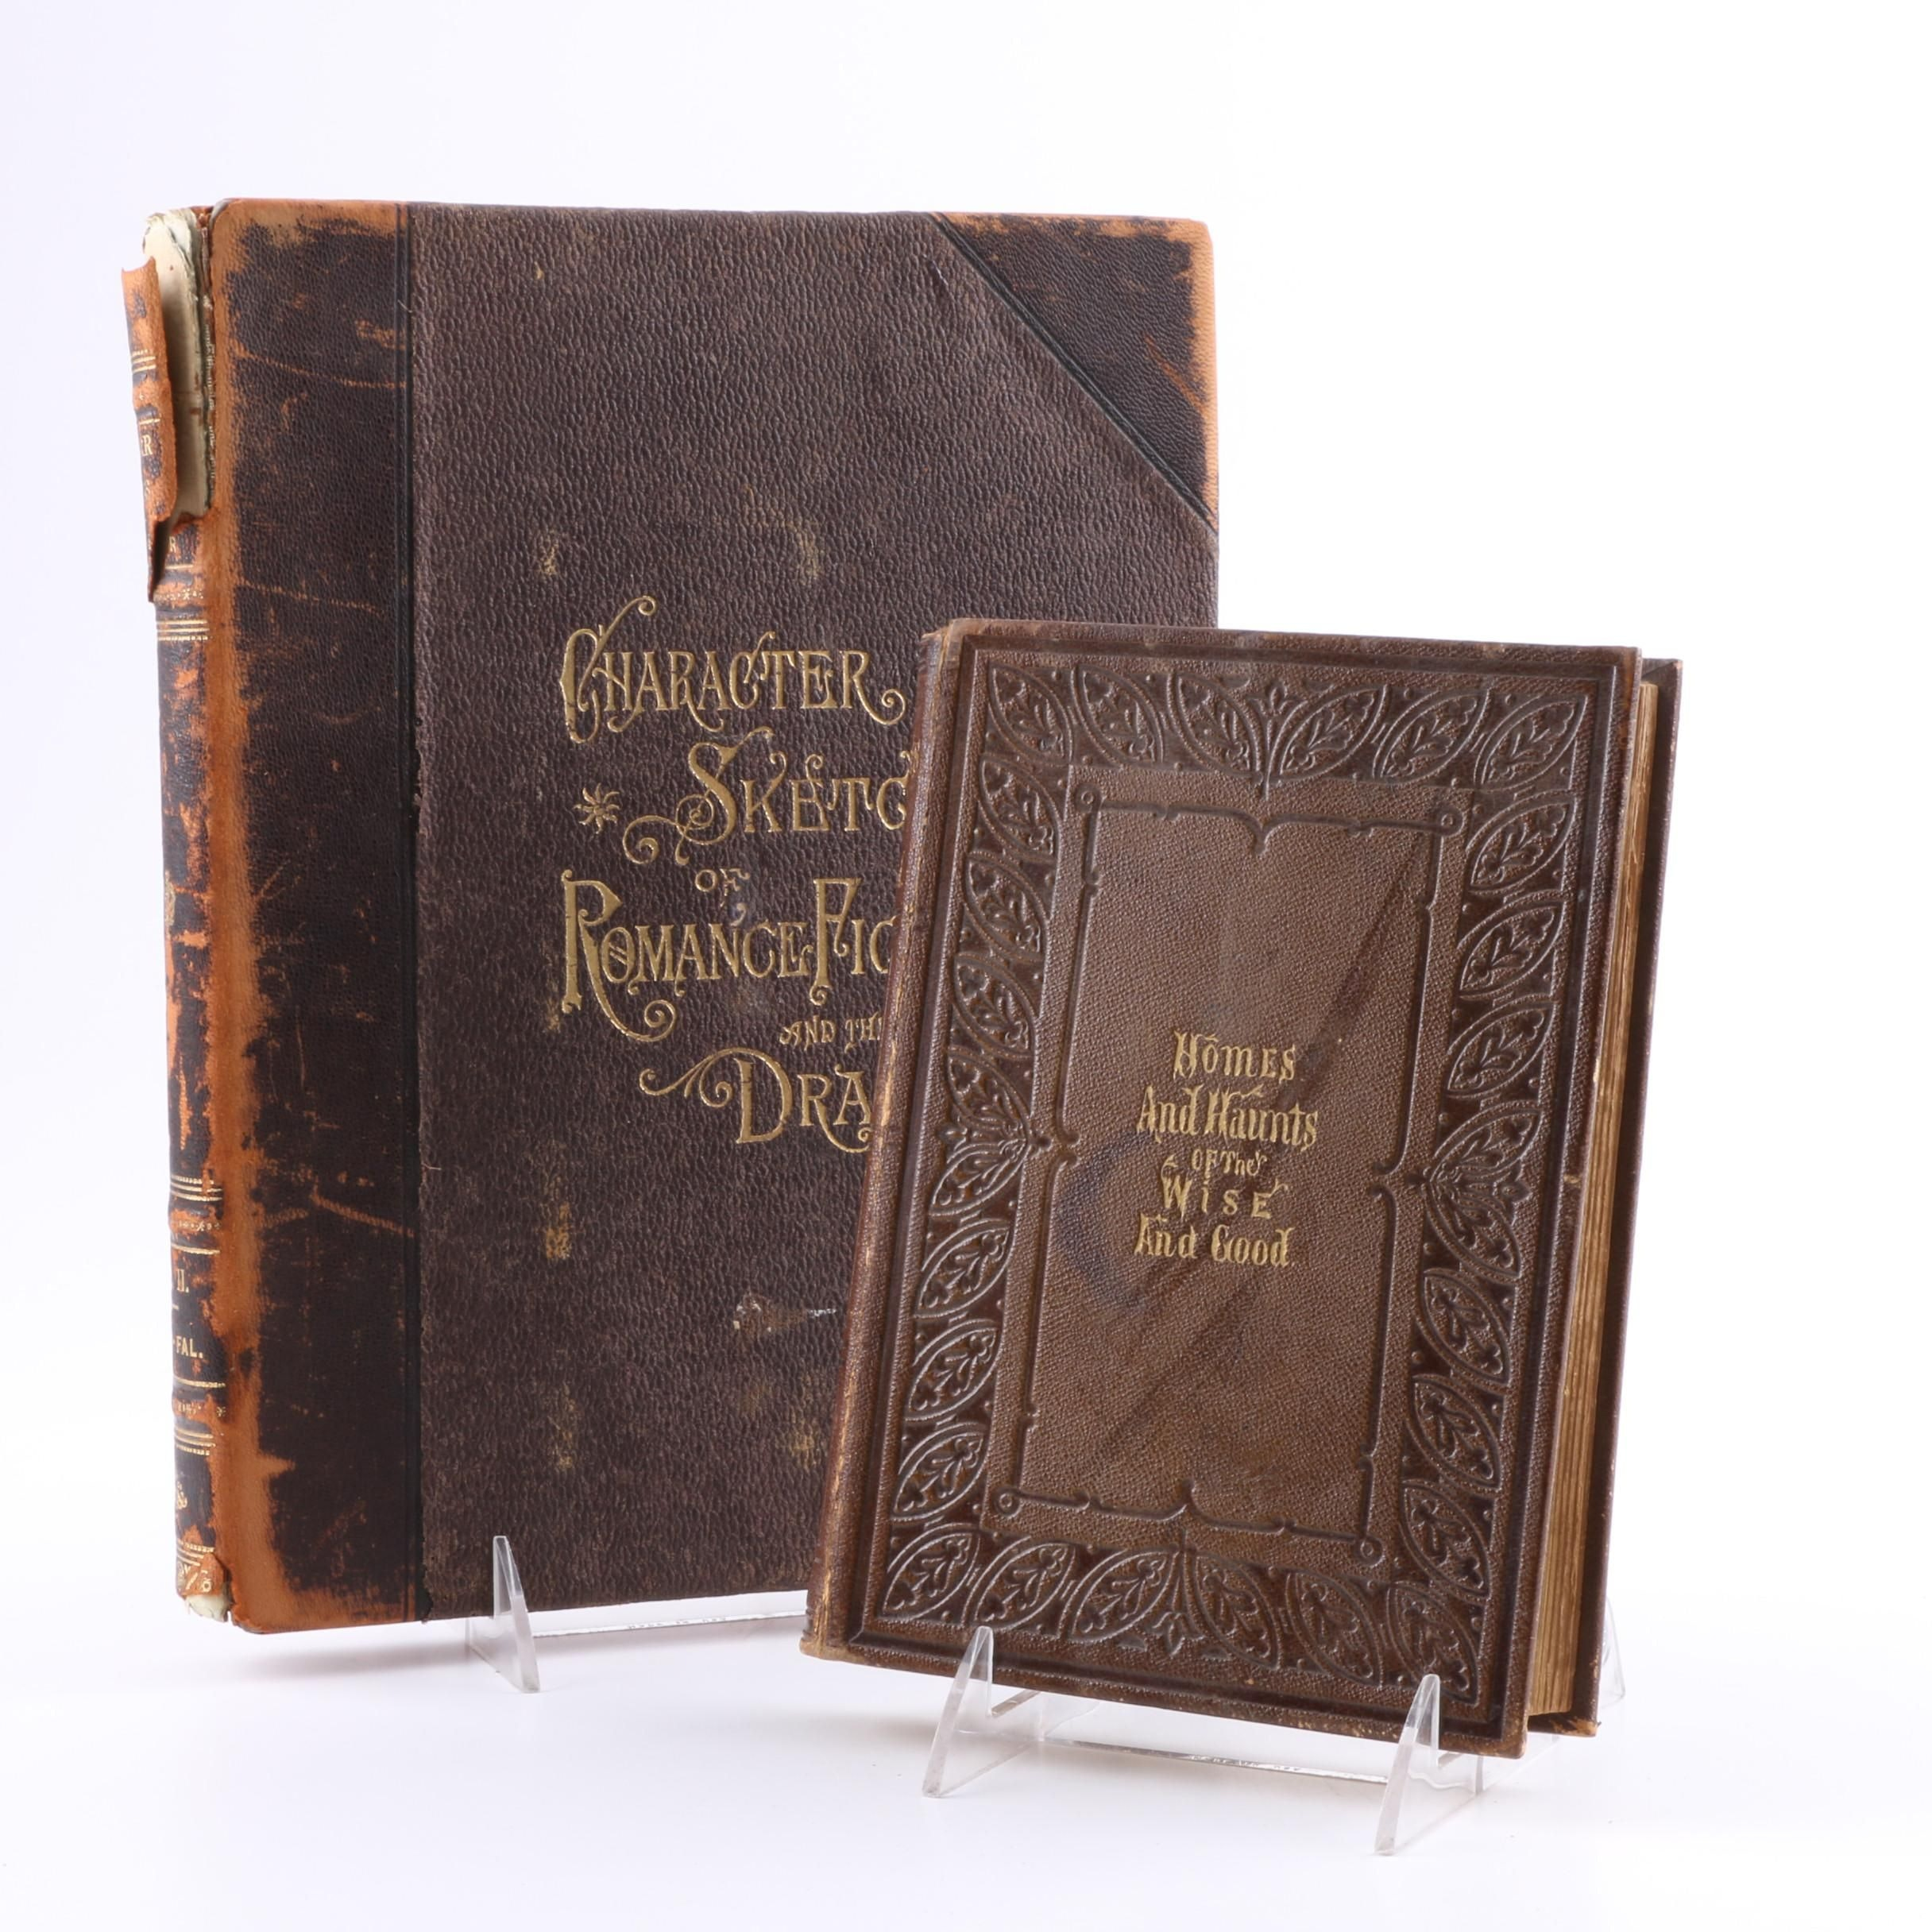 Two Antique Books from Robert Schuller's Library